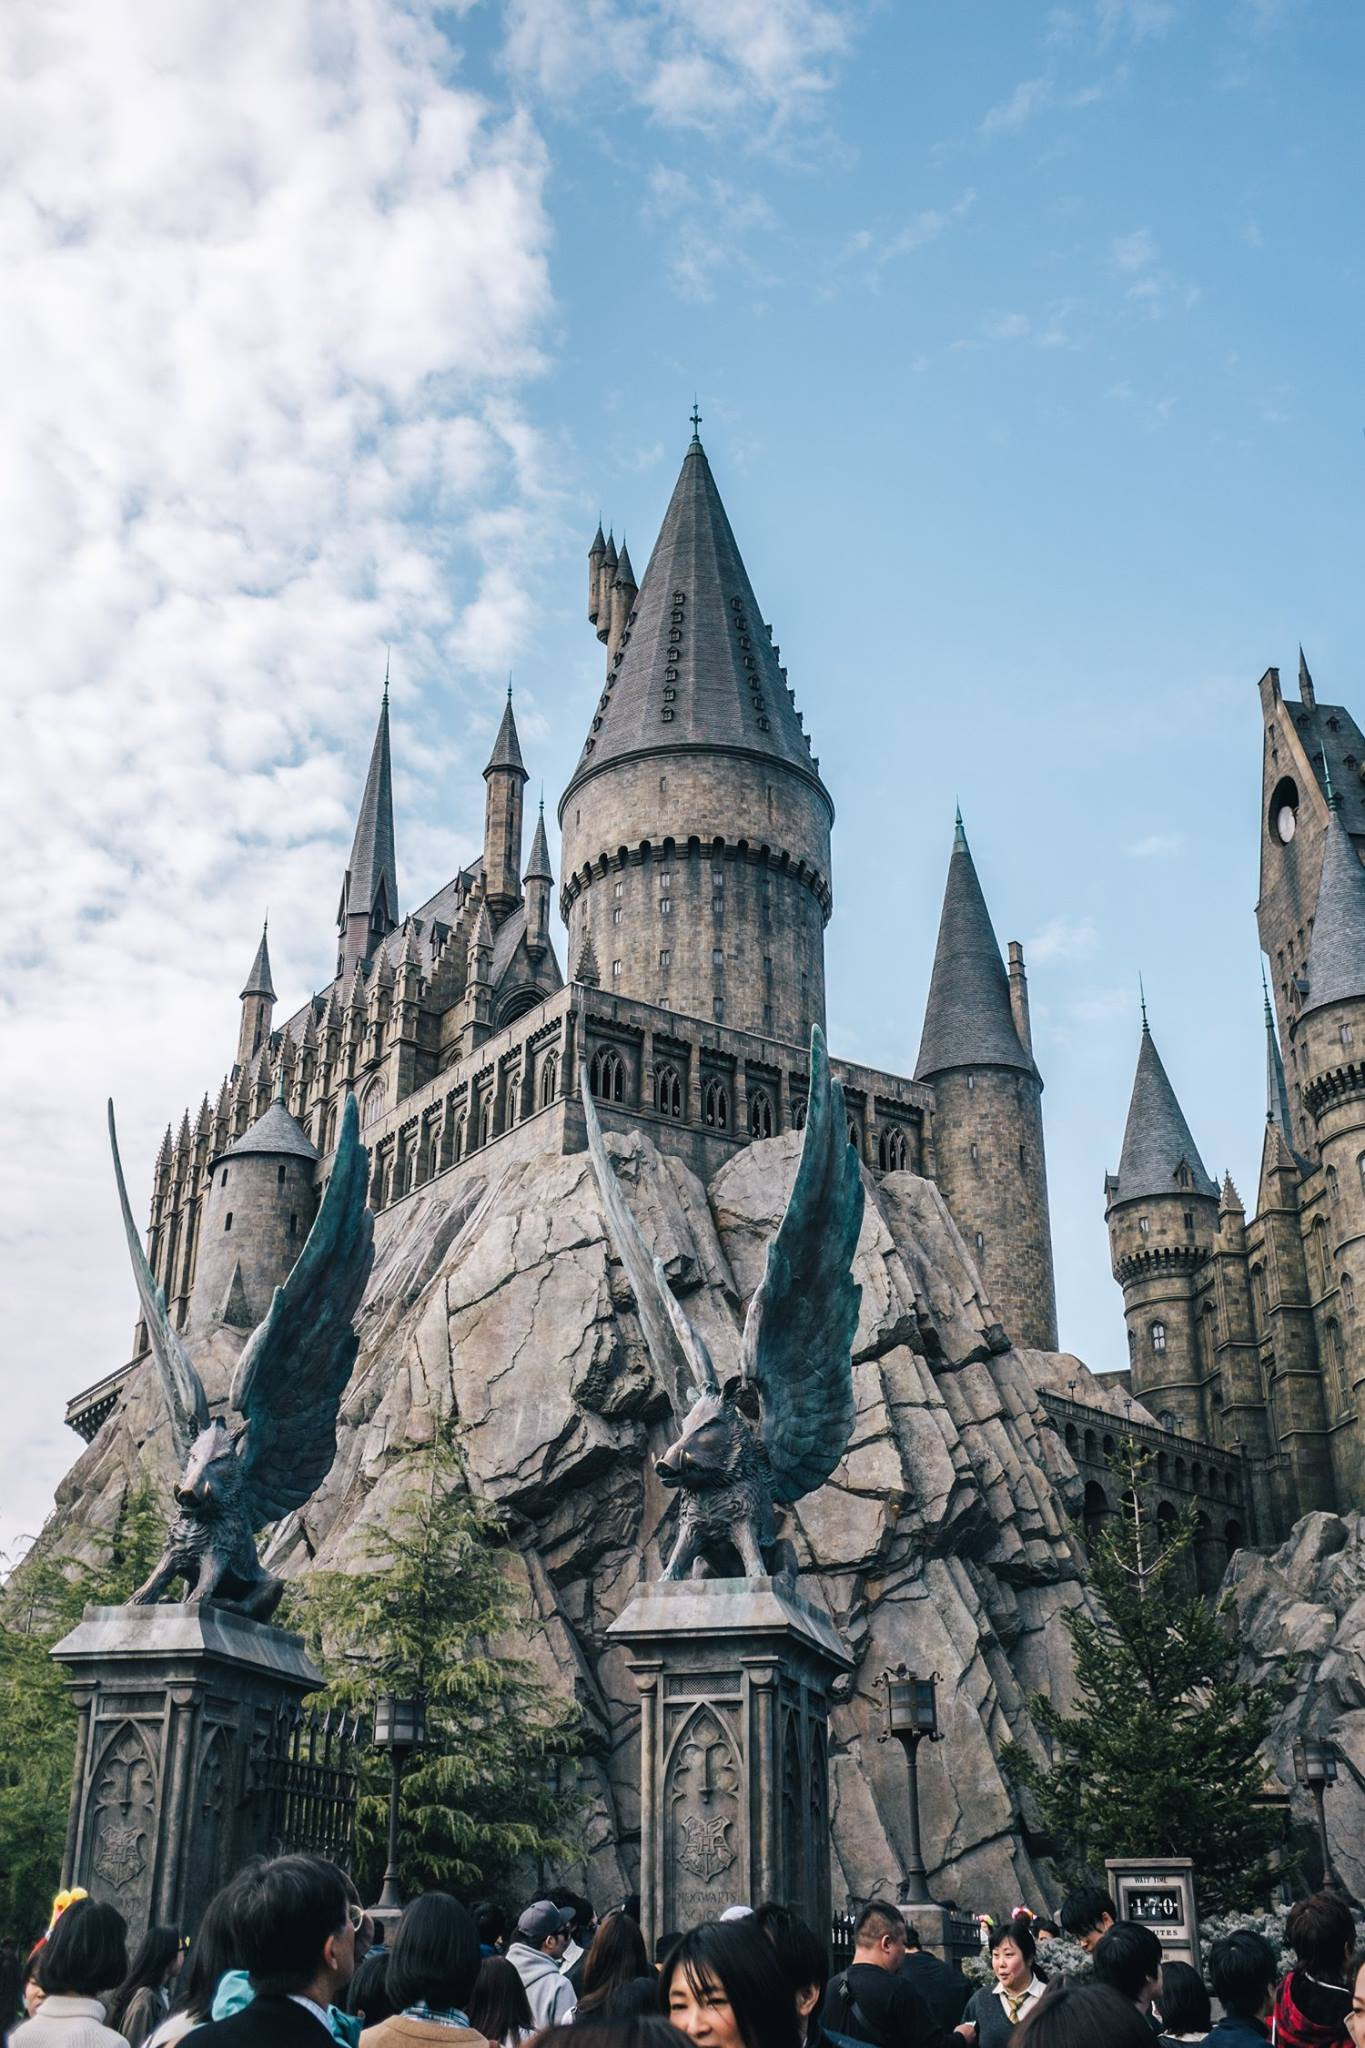 wizarding world of harry potter_maren-hald-bjorgum-21